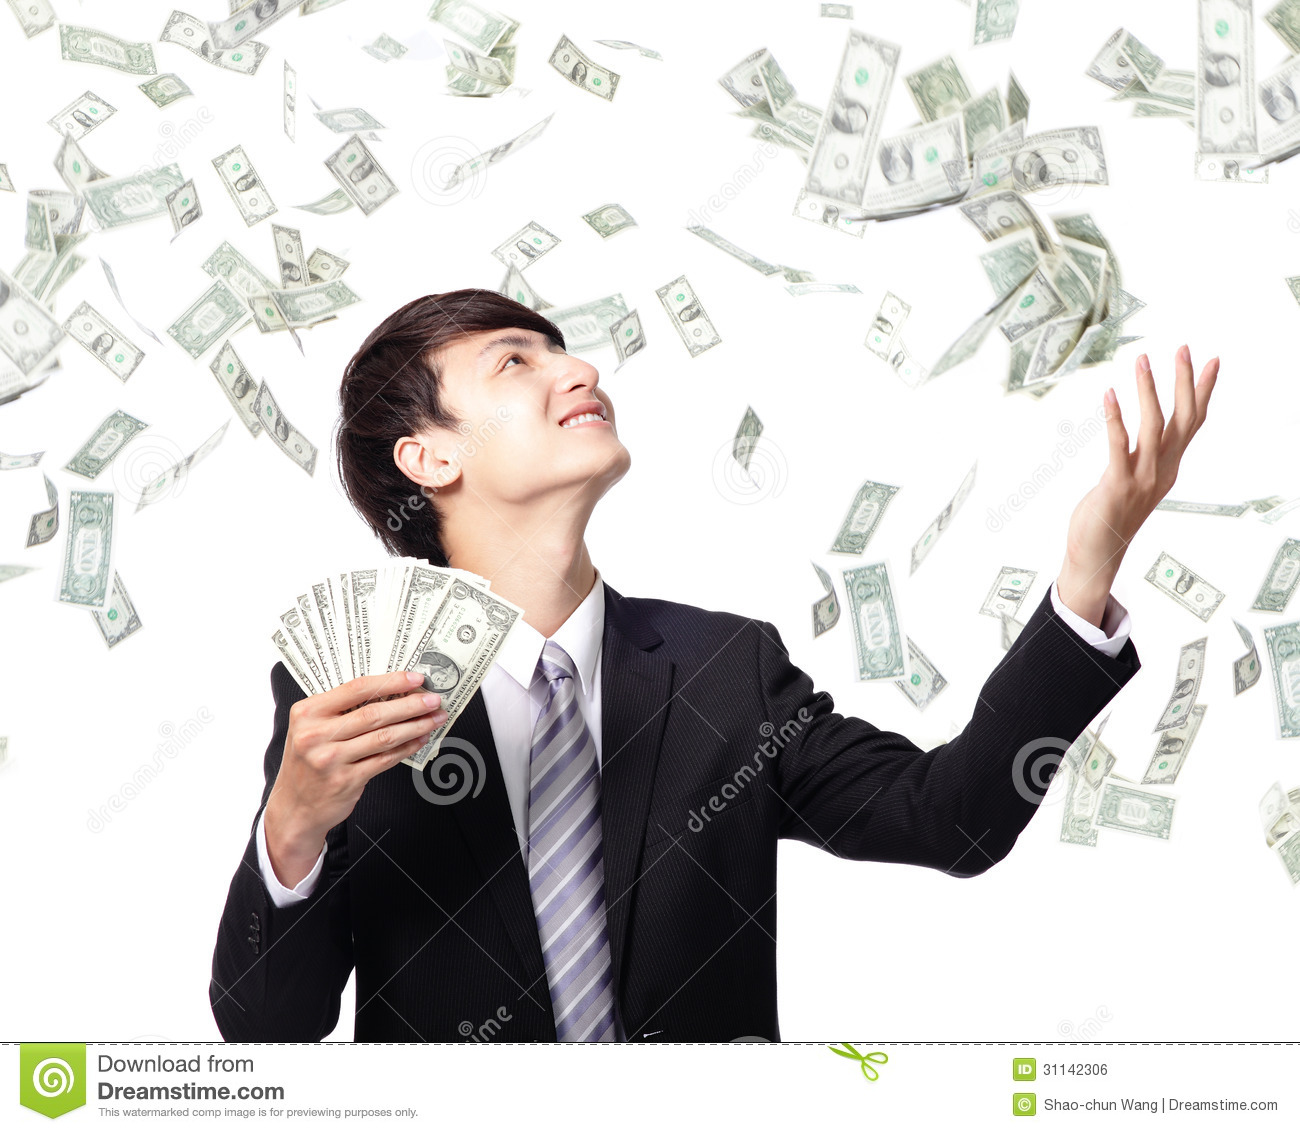 happy-business-man-us-money-earned-dollar-bills-under-rain-isolated-over-white-background-asian-model-31142306.jpg